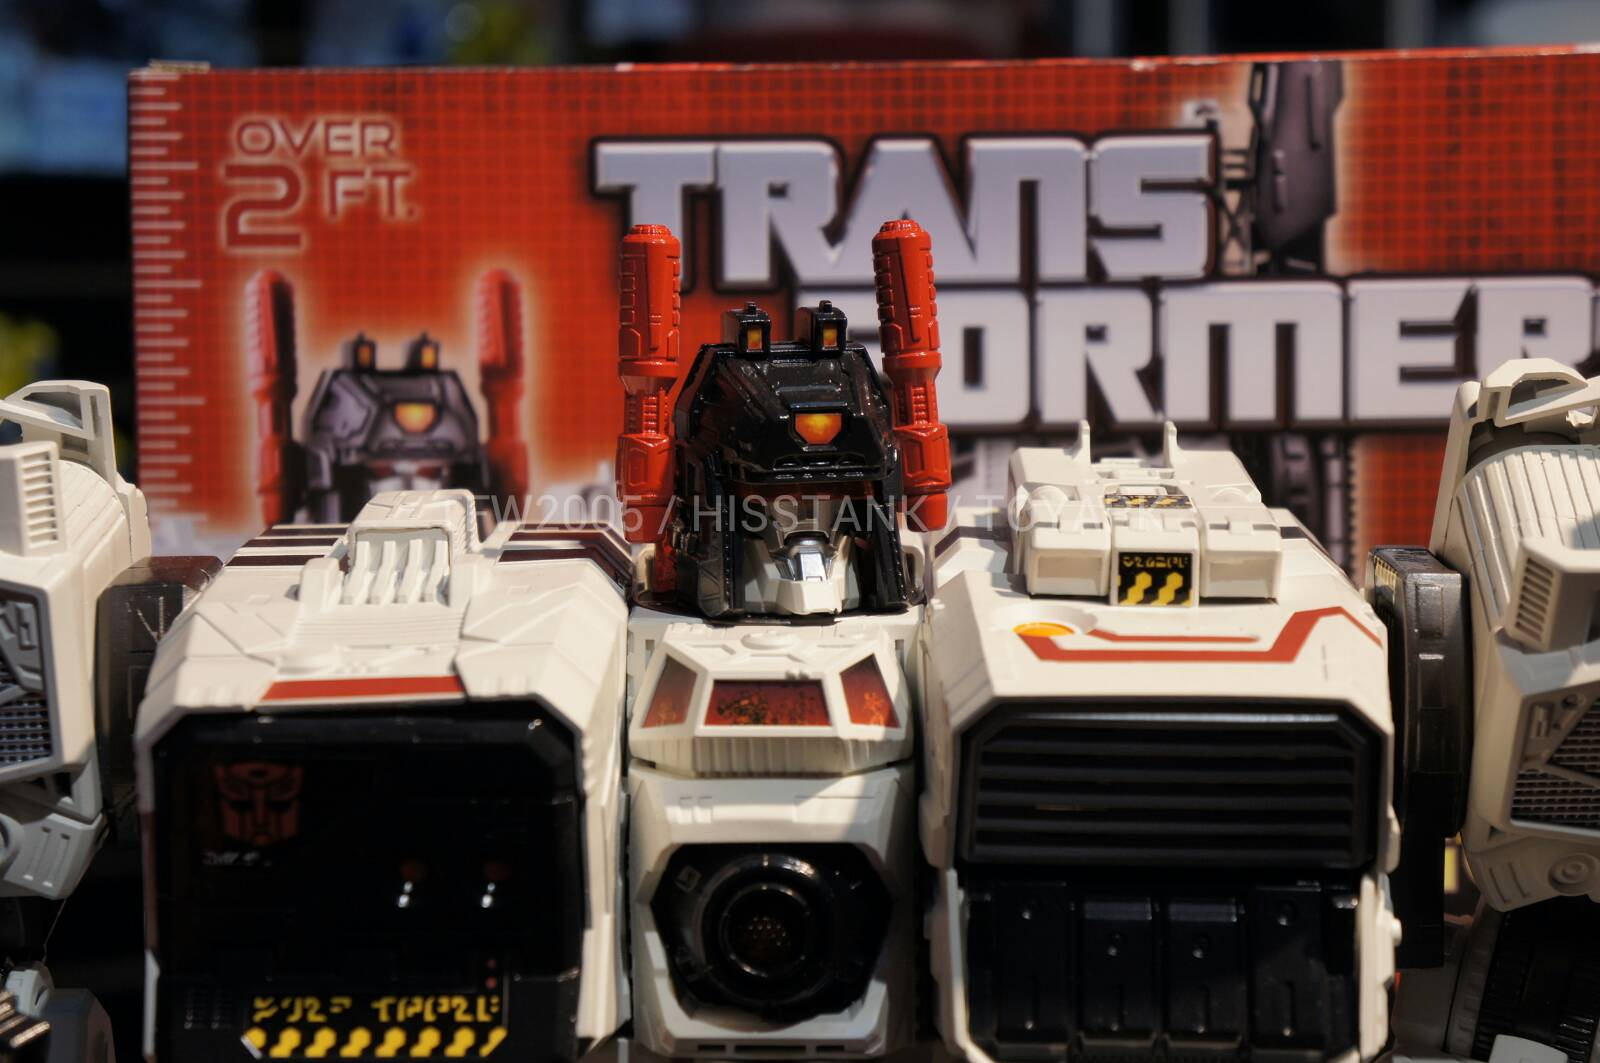 Transformers-Metroplex-Toy-Fair-2013-017